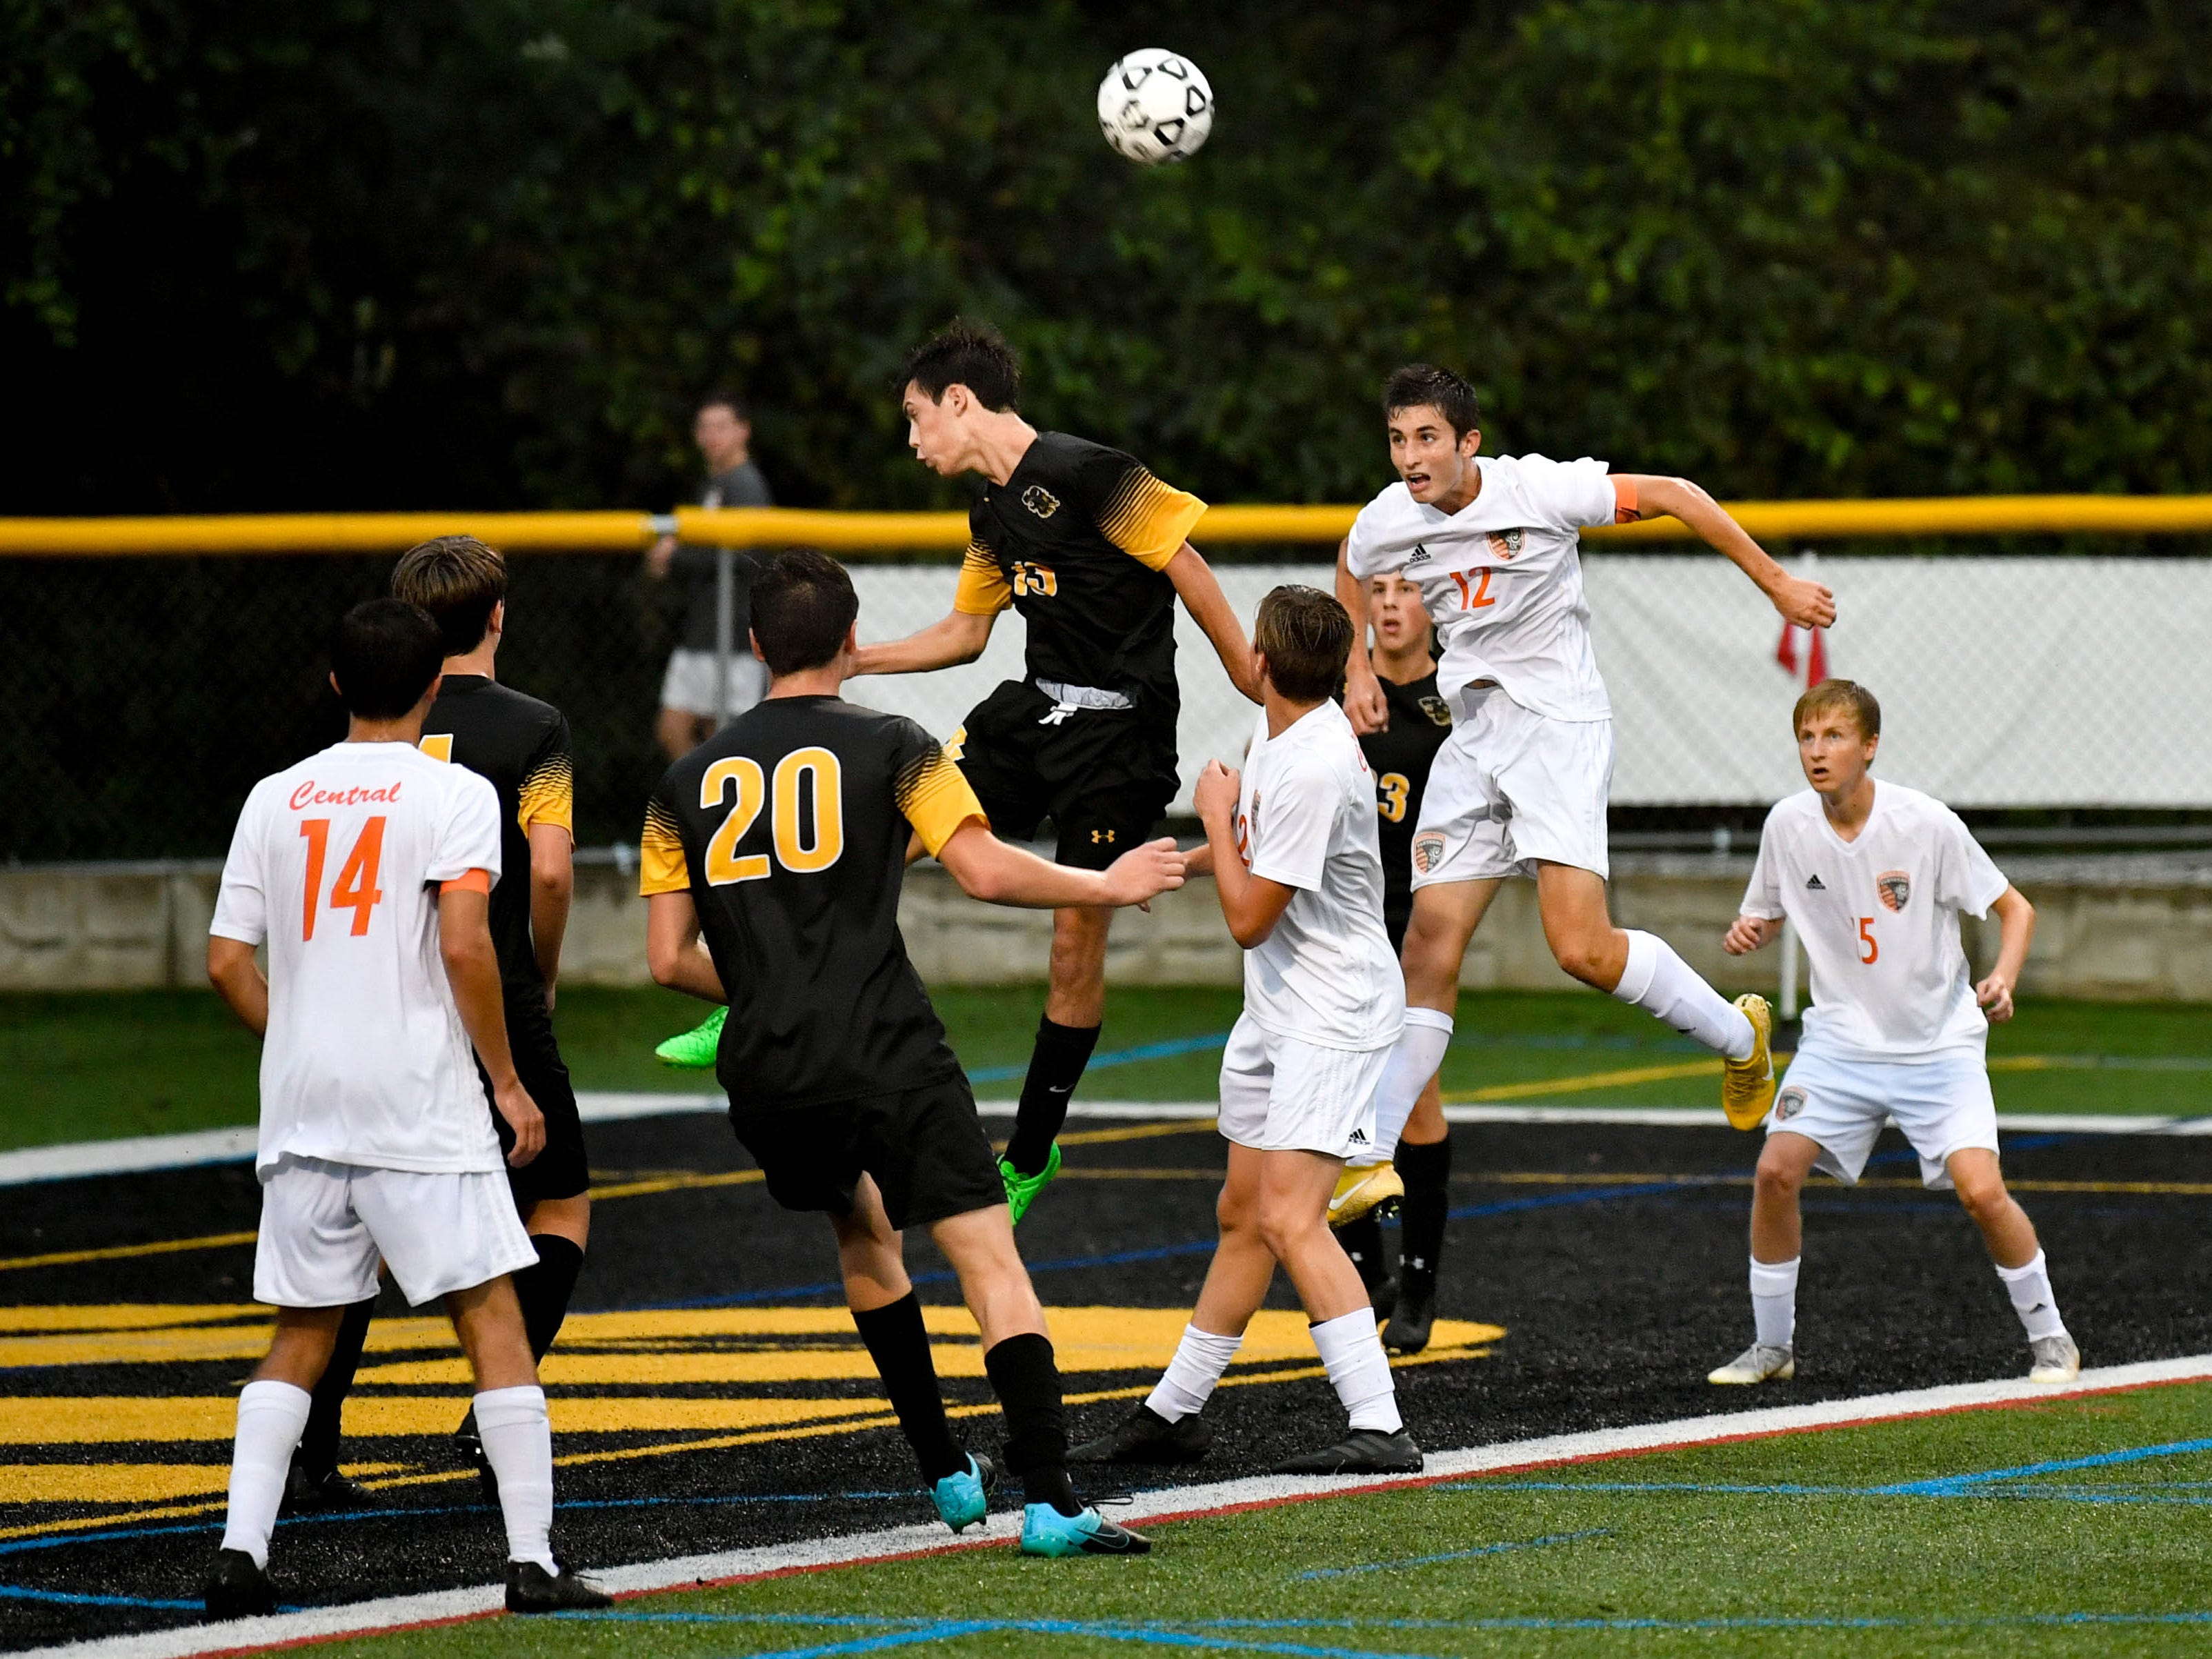 Central York tries to capitalize on the cross opportunity during their game against Red Lion.